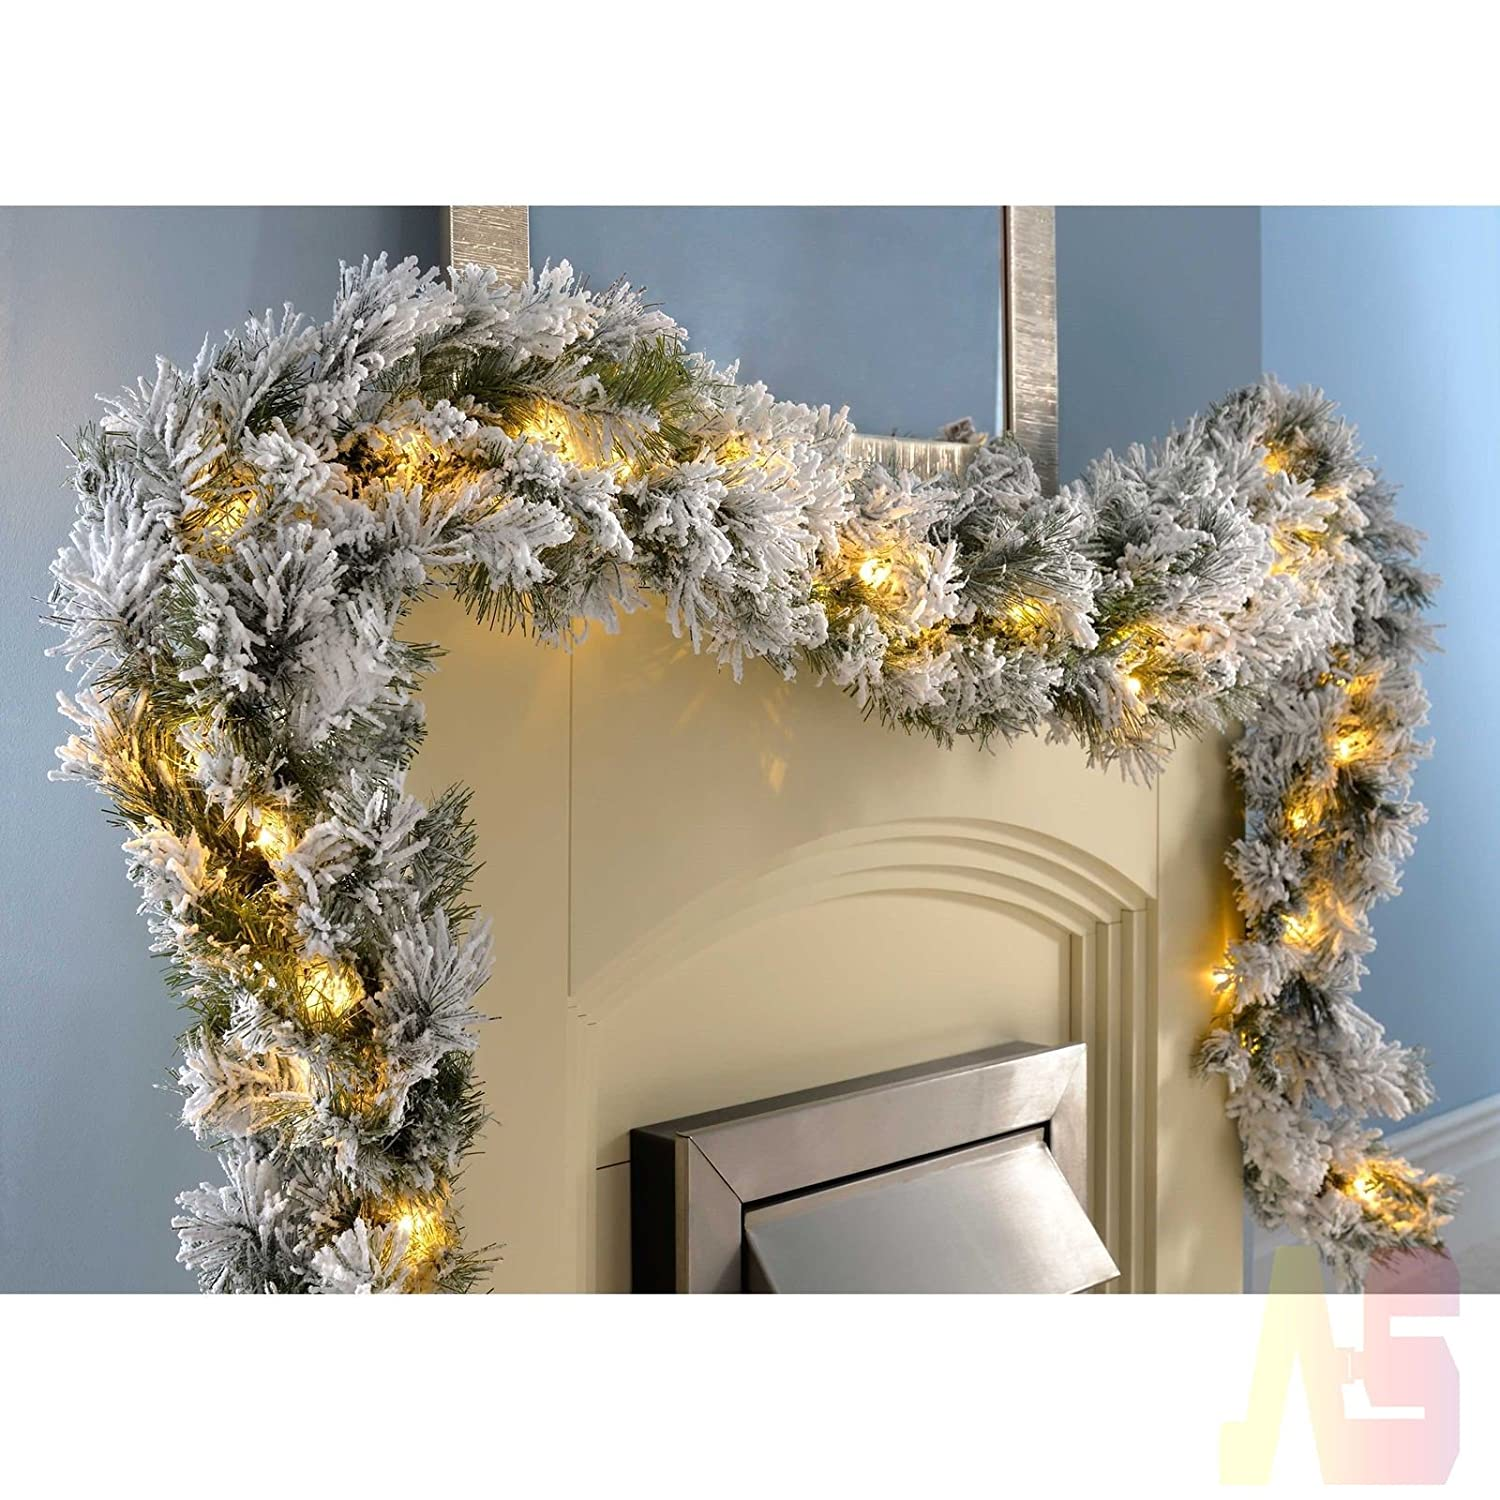 9ft Pre Lit Garland Snow Flocked Spruce Christmas Decoration 2.7m Xmas Gift LED Light up SalesCity